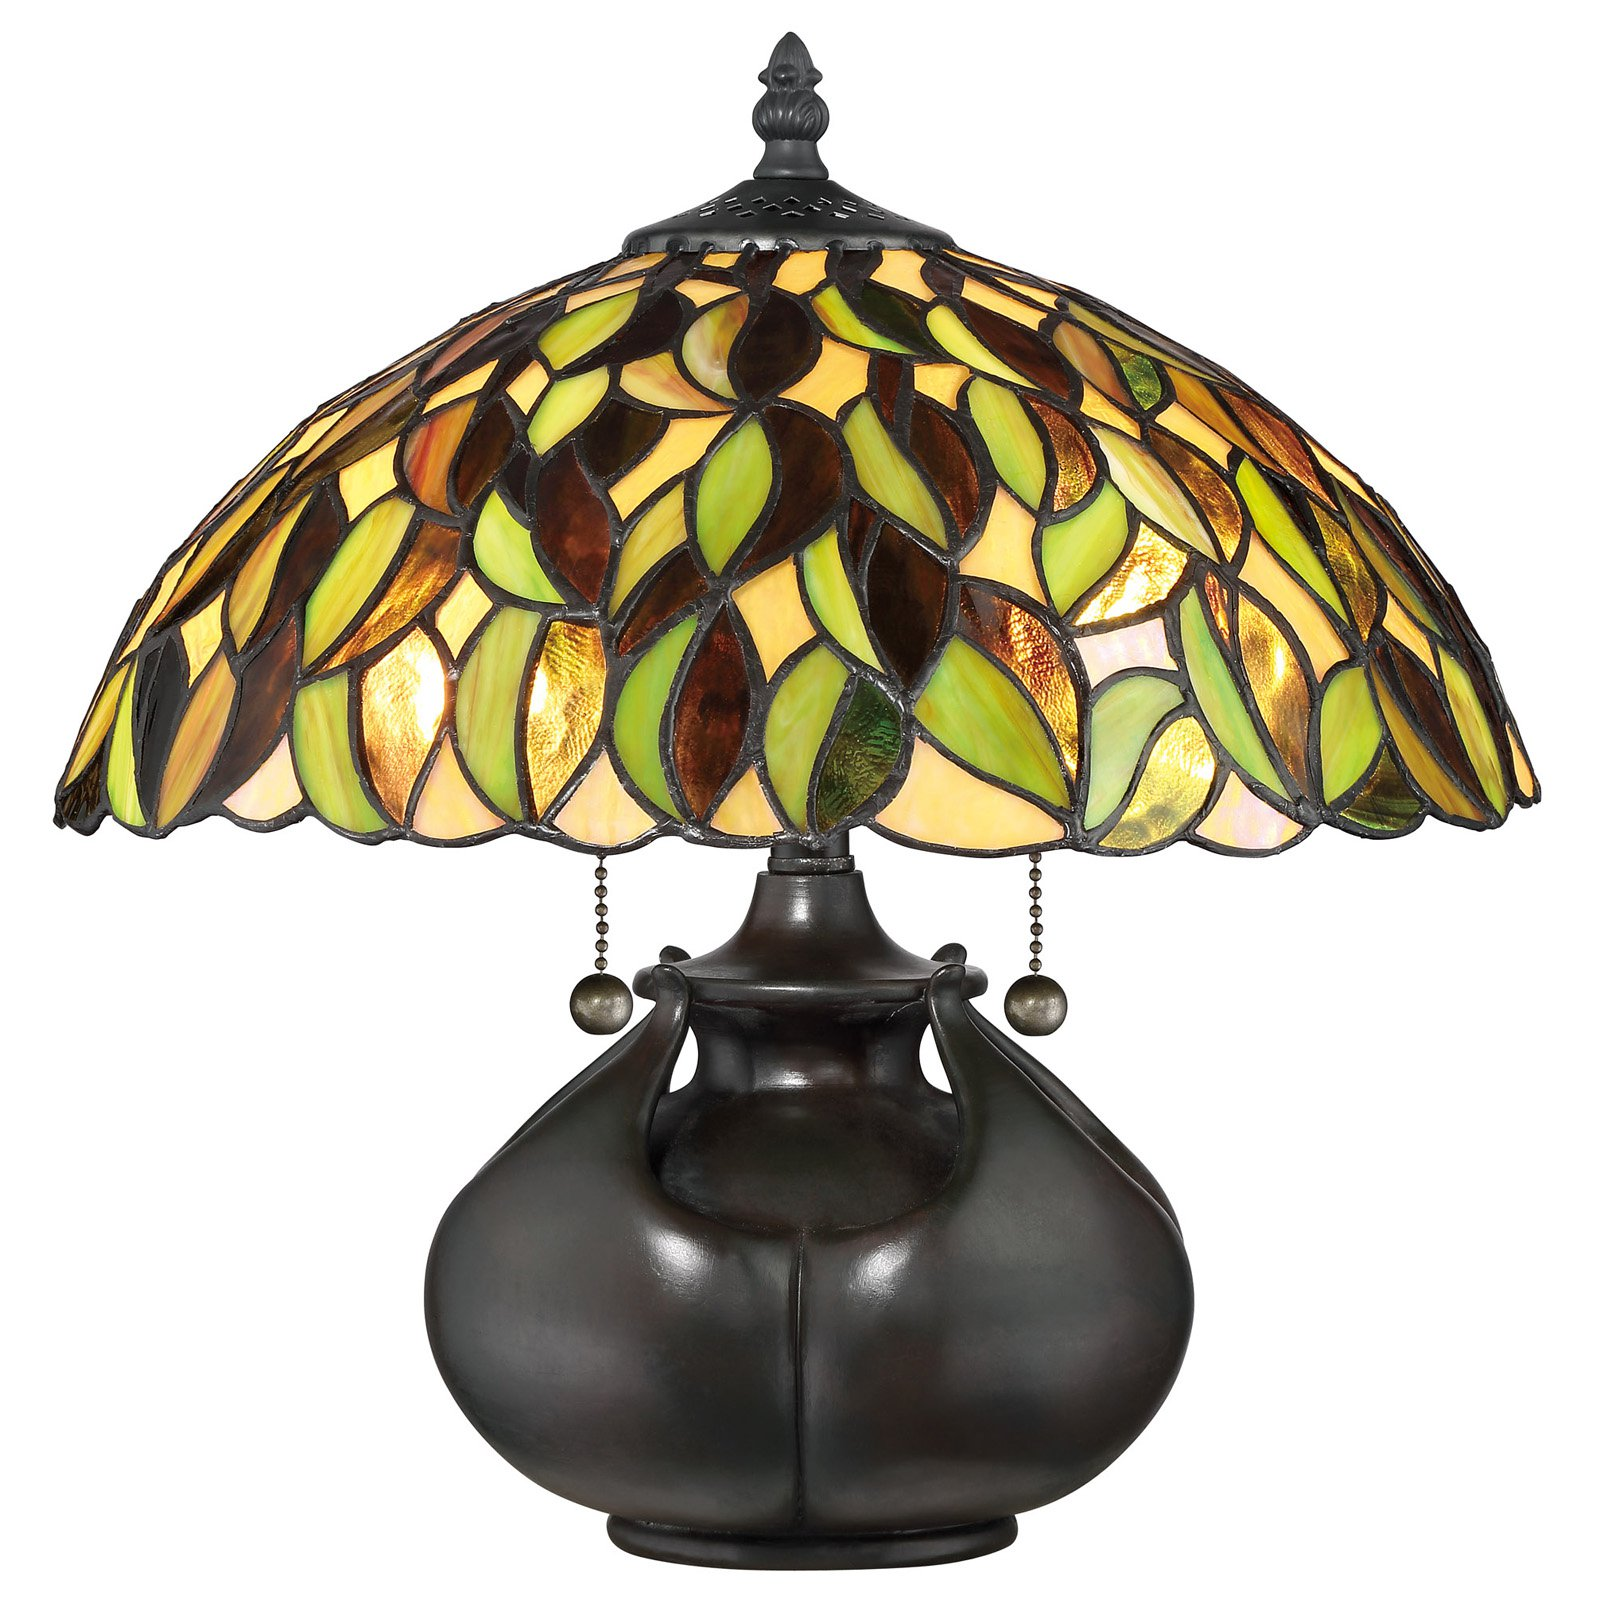 Quoizel 14.5 Tiffany Table Lamp by Quoizel